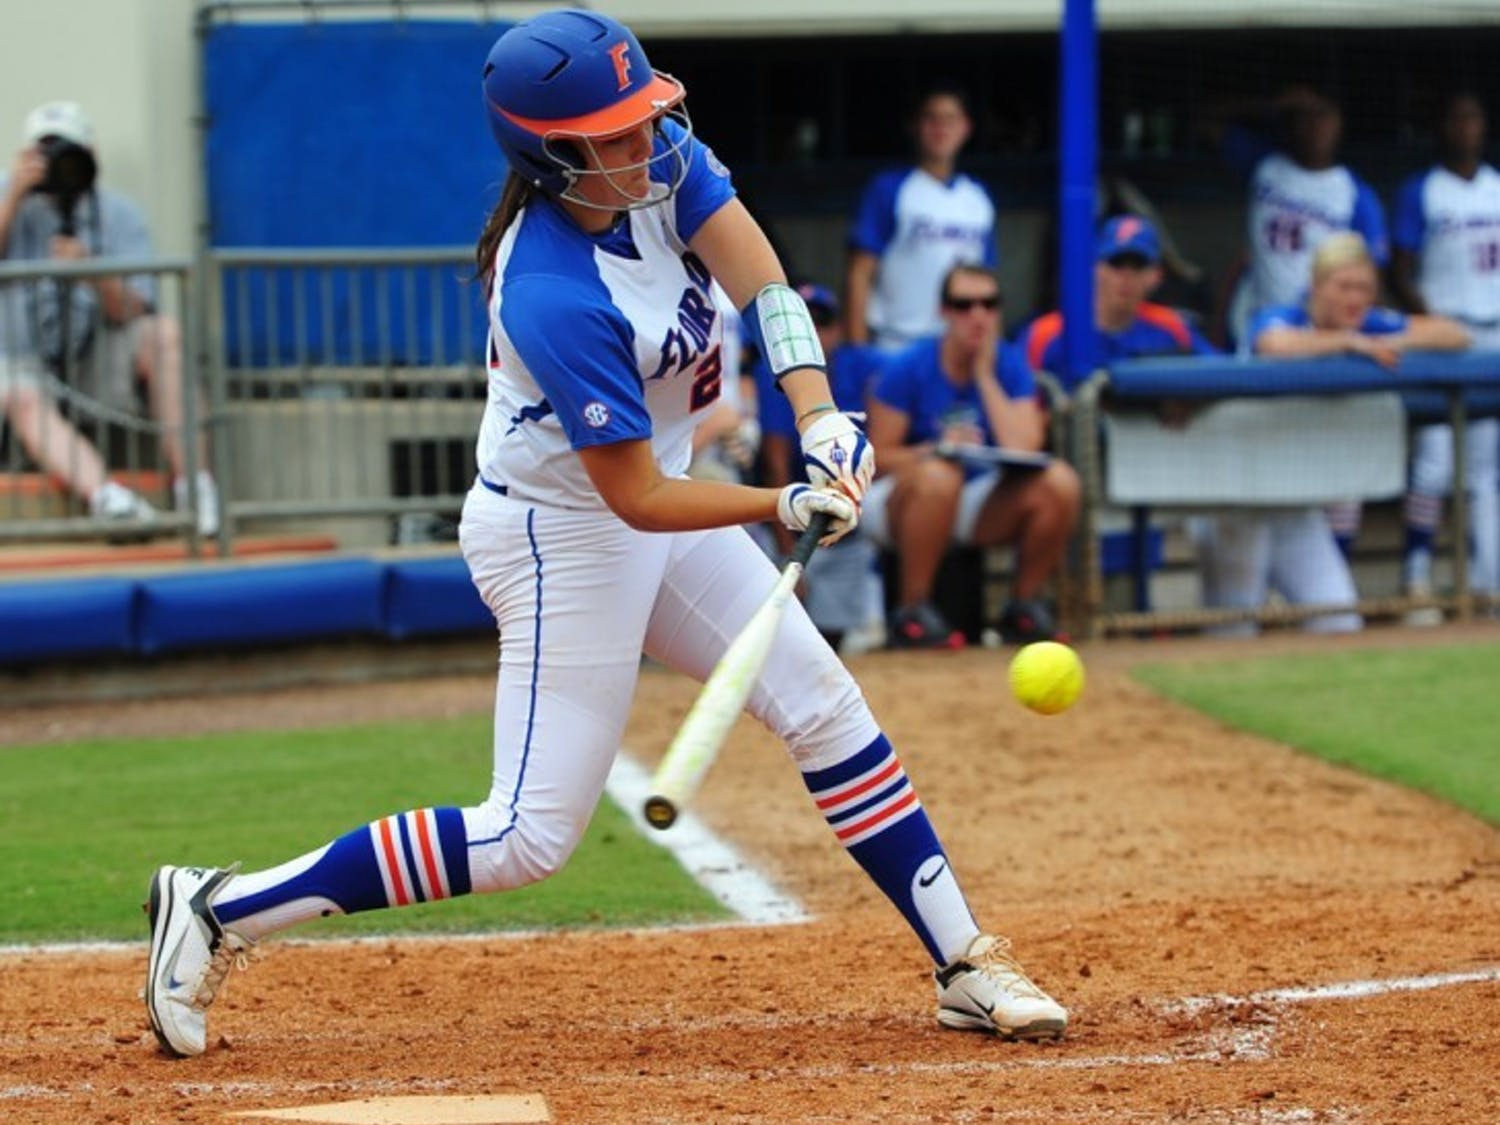 Kelsey Horton connects with a pitch in Florida's 5-2 win against Auburn on April 15, 2012. Horton hit a home run in Florida's 10-4 win against Missouri in the SEC Tournament final on Saturday.